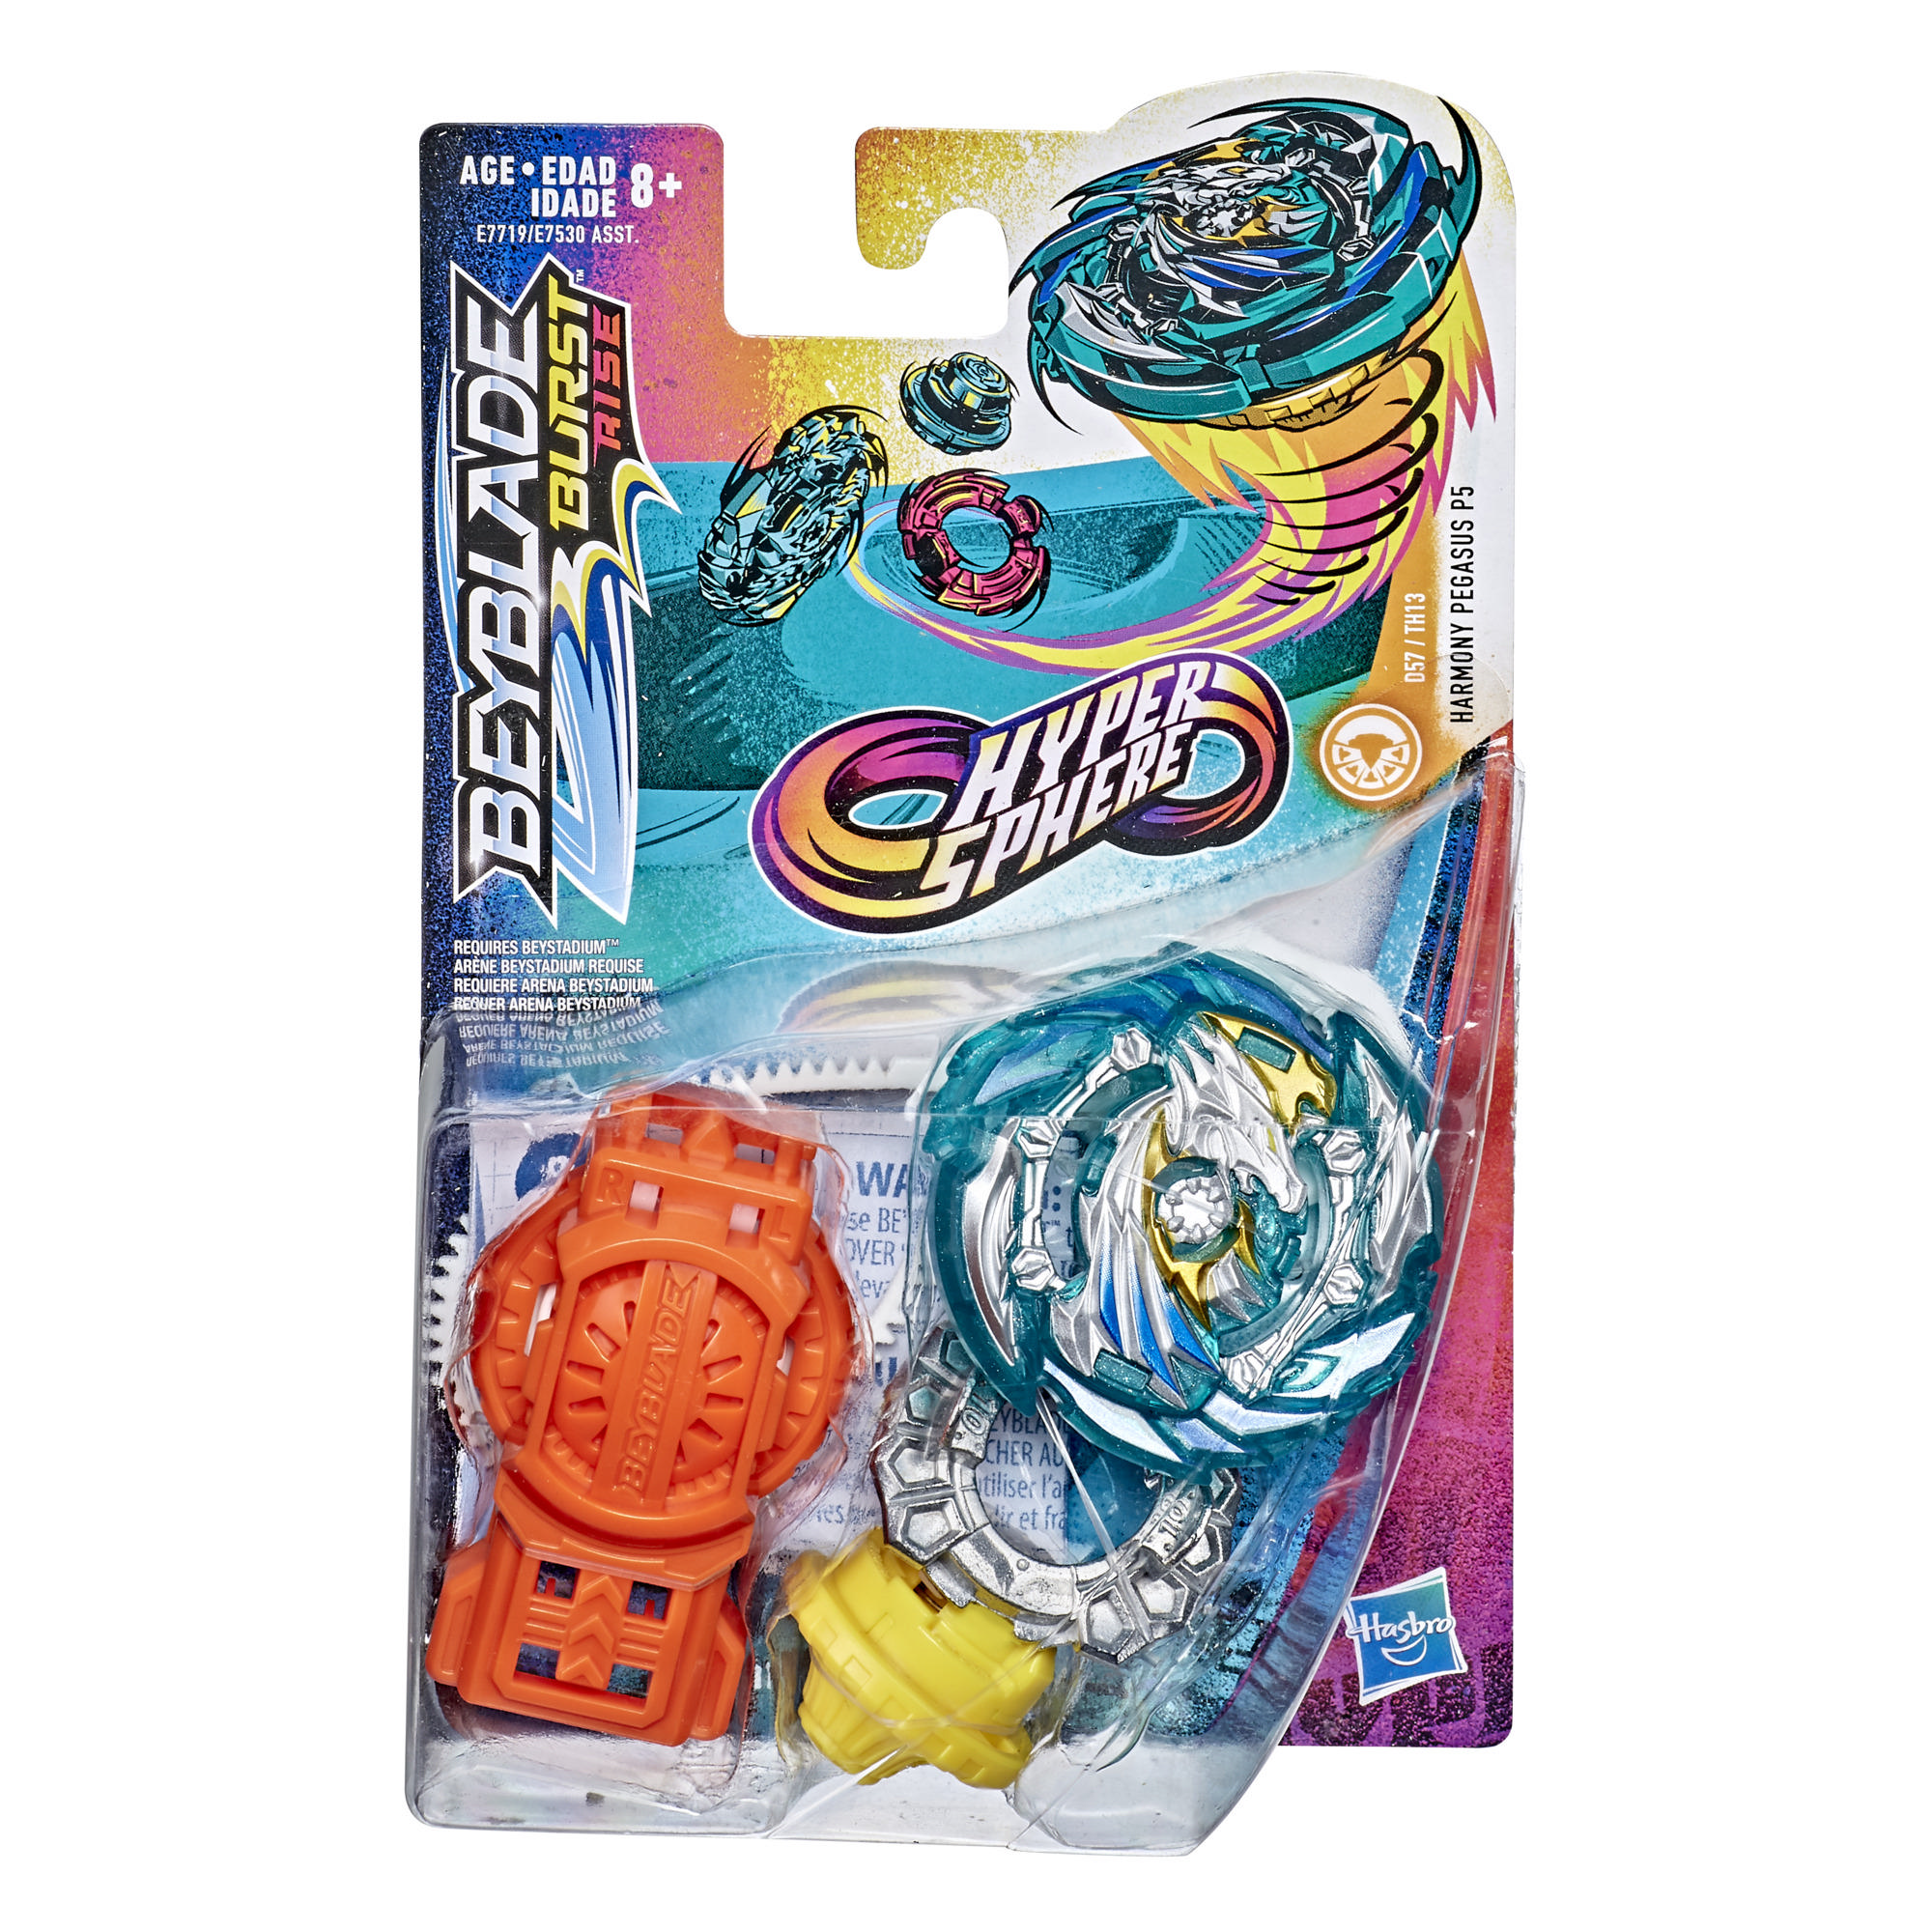 Beyblade Burst Rise Hypersphere Harmony Pegasus P5 Starter Pack -- Battling Top Toy and Right/Left-Spin Launcher